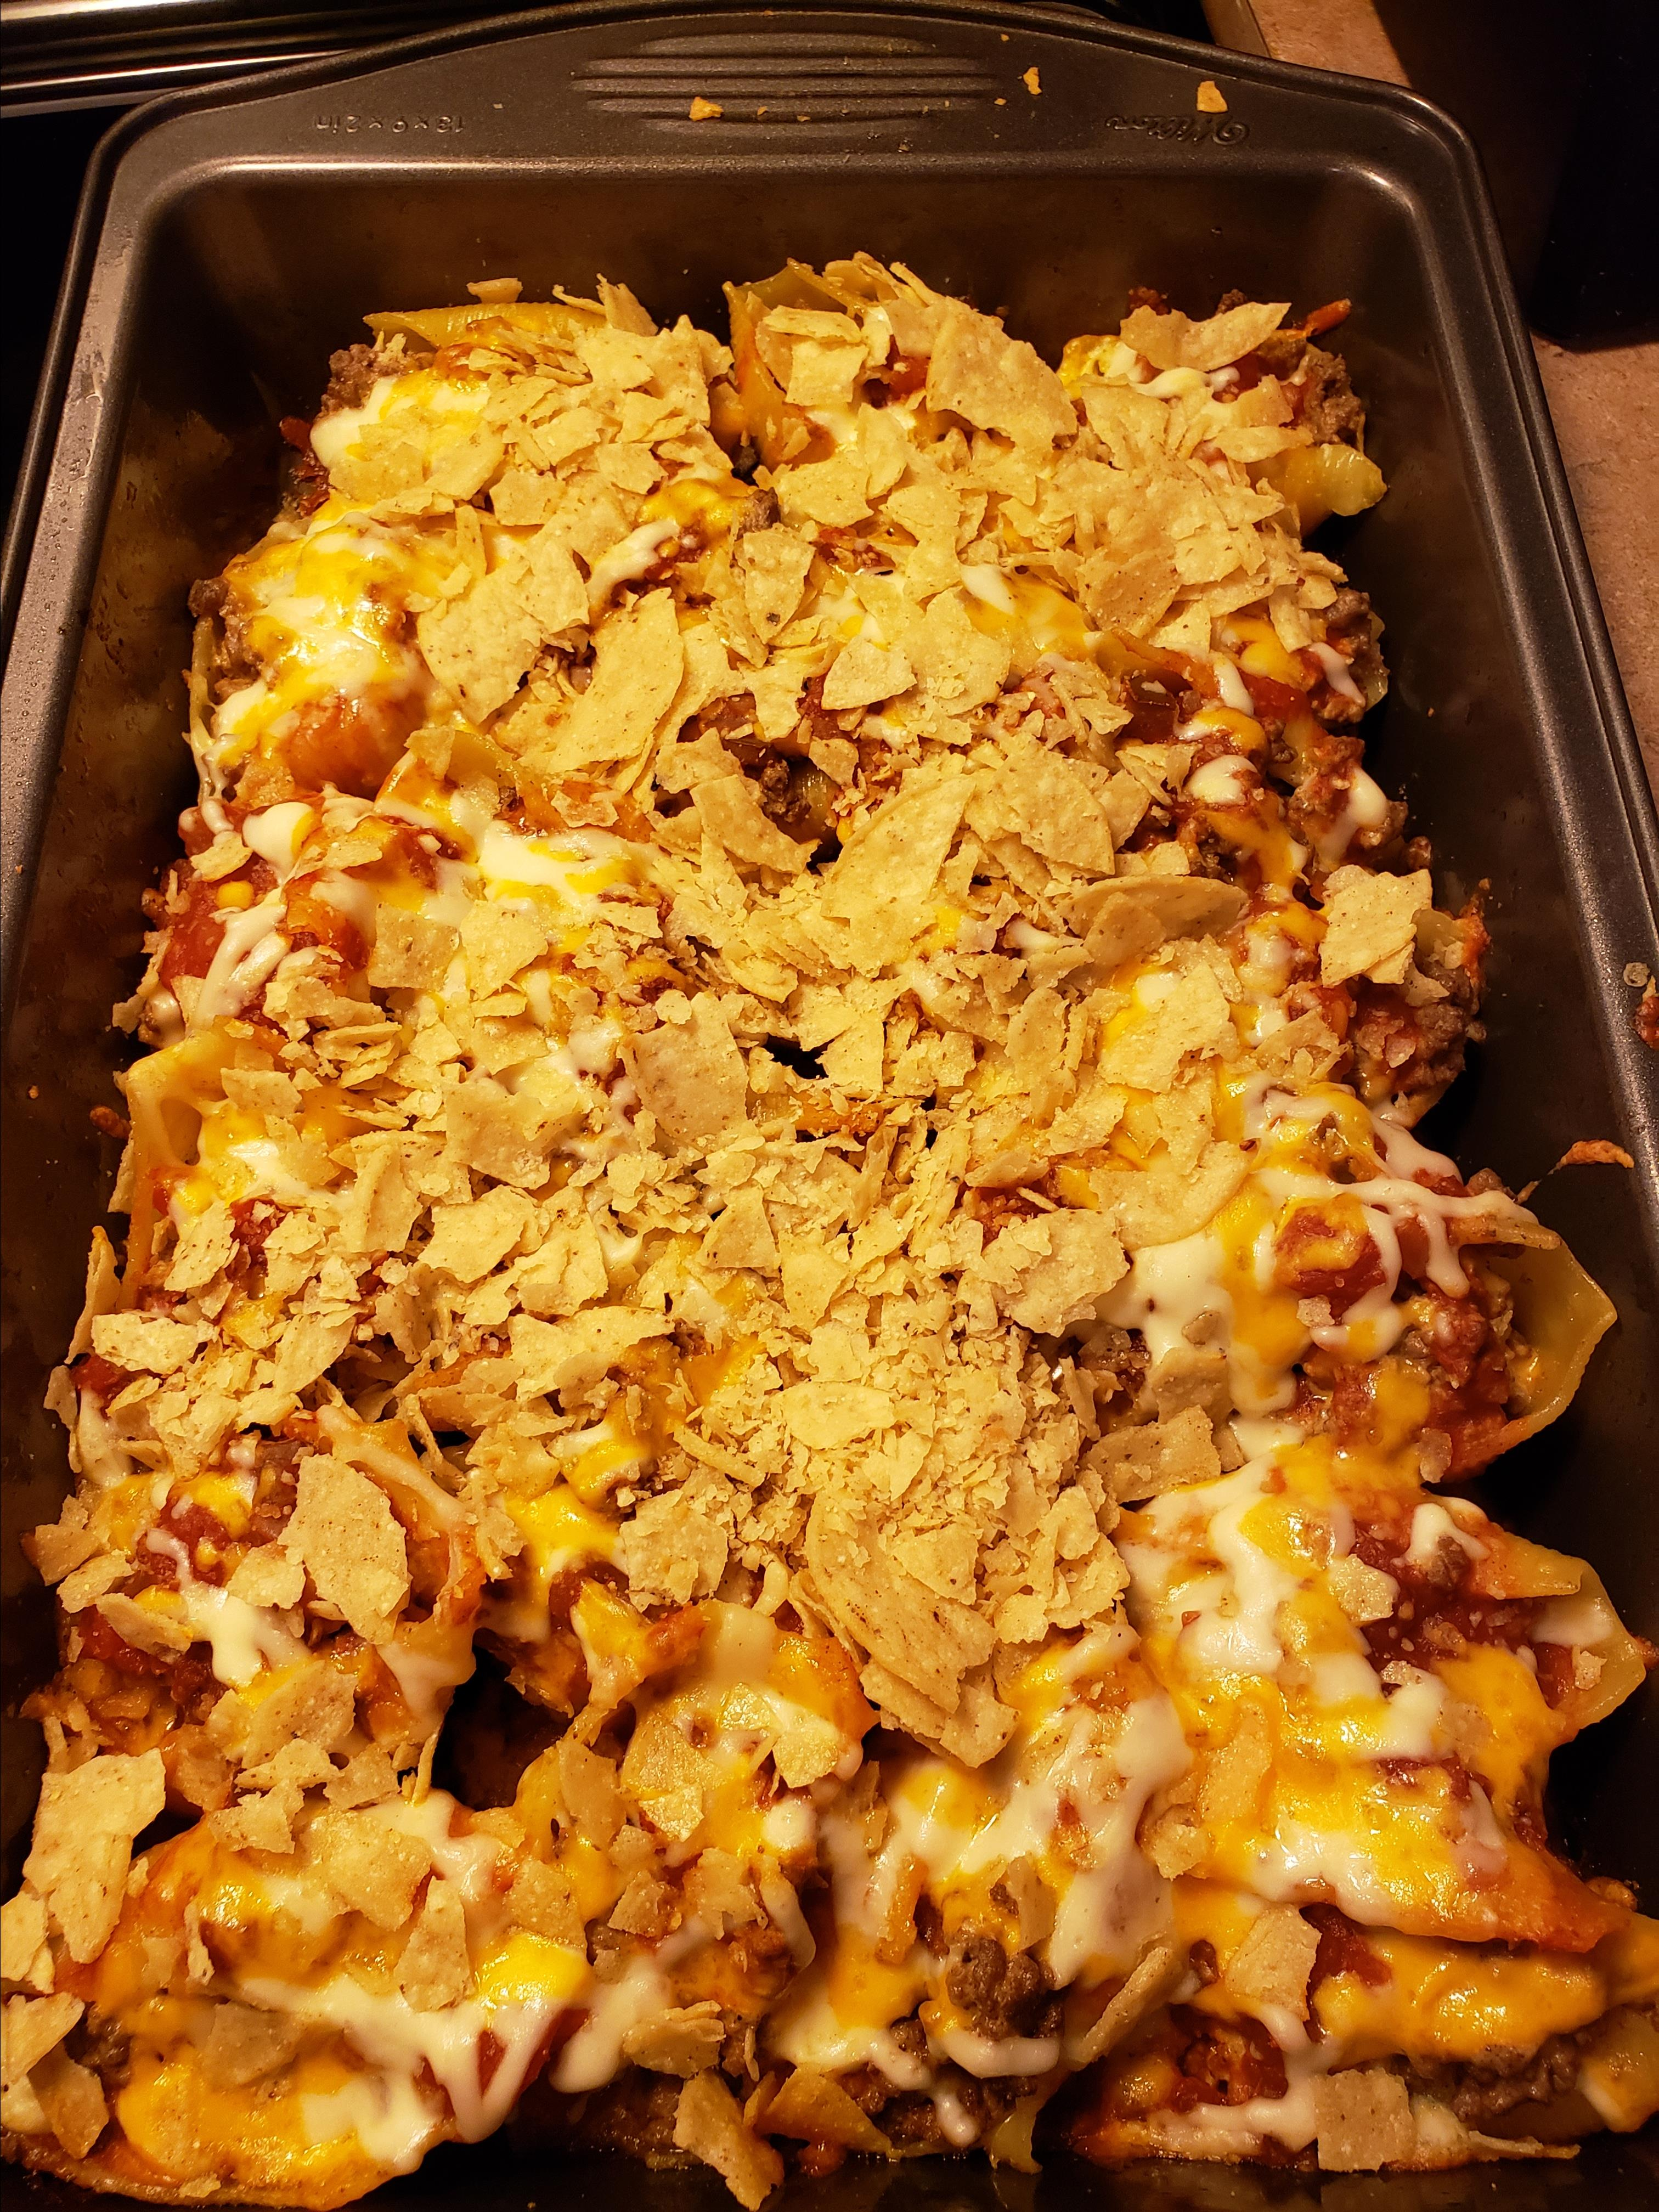 Tacos in Pasta Shells kelly.paton@rogers.com